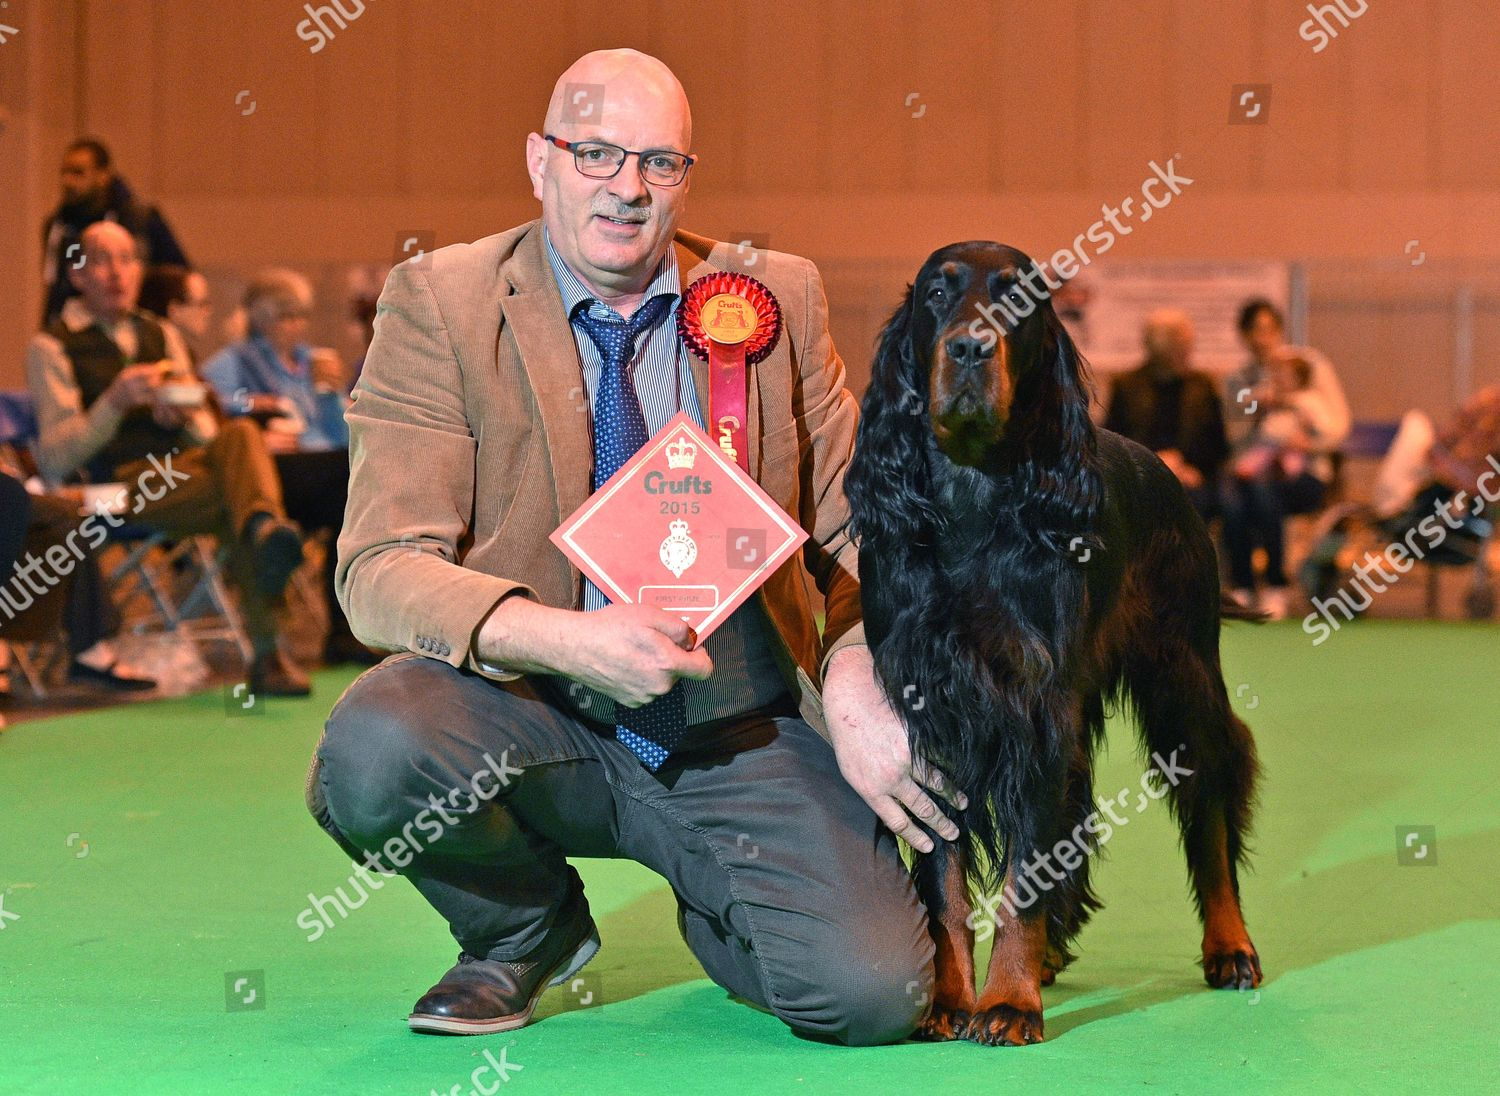 Crufts Dog Show Day 1 Gun Dog Editorial Stock Photo - Stock Image